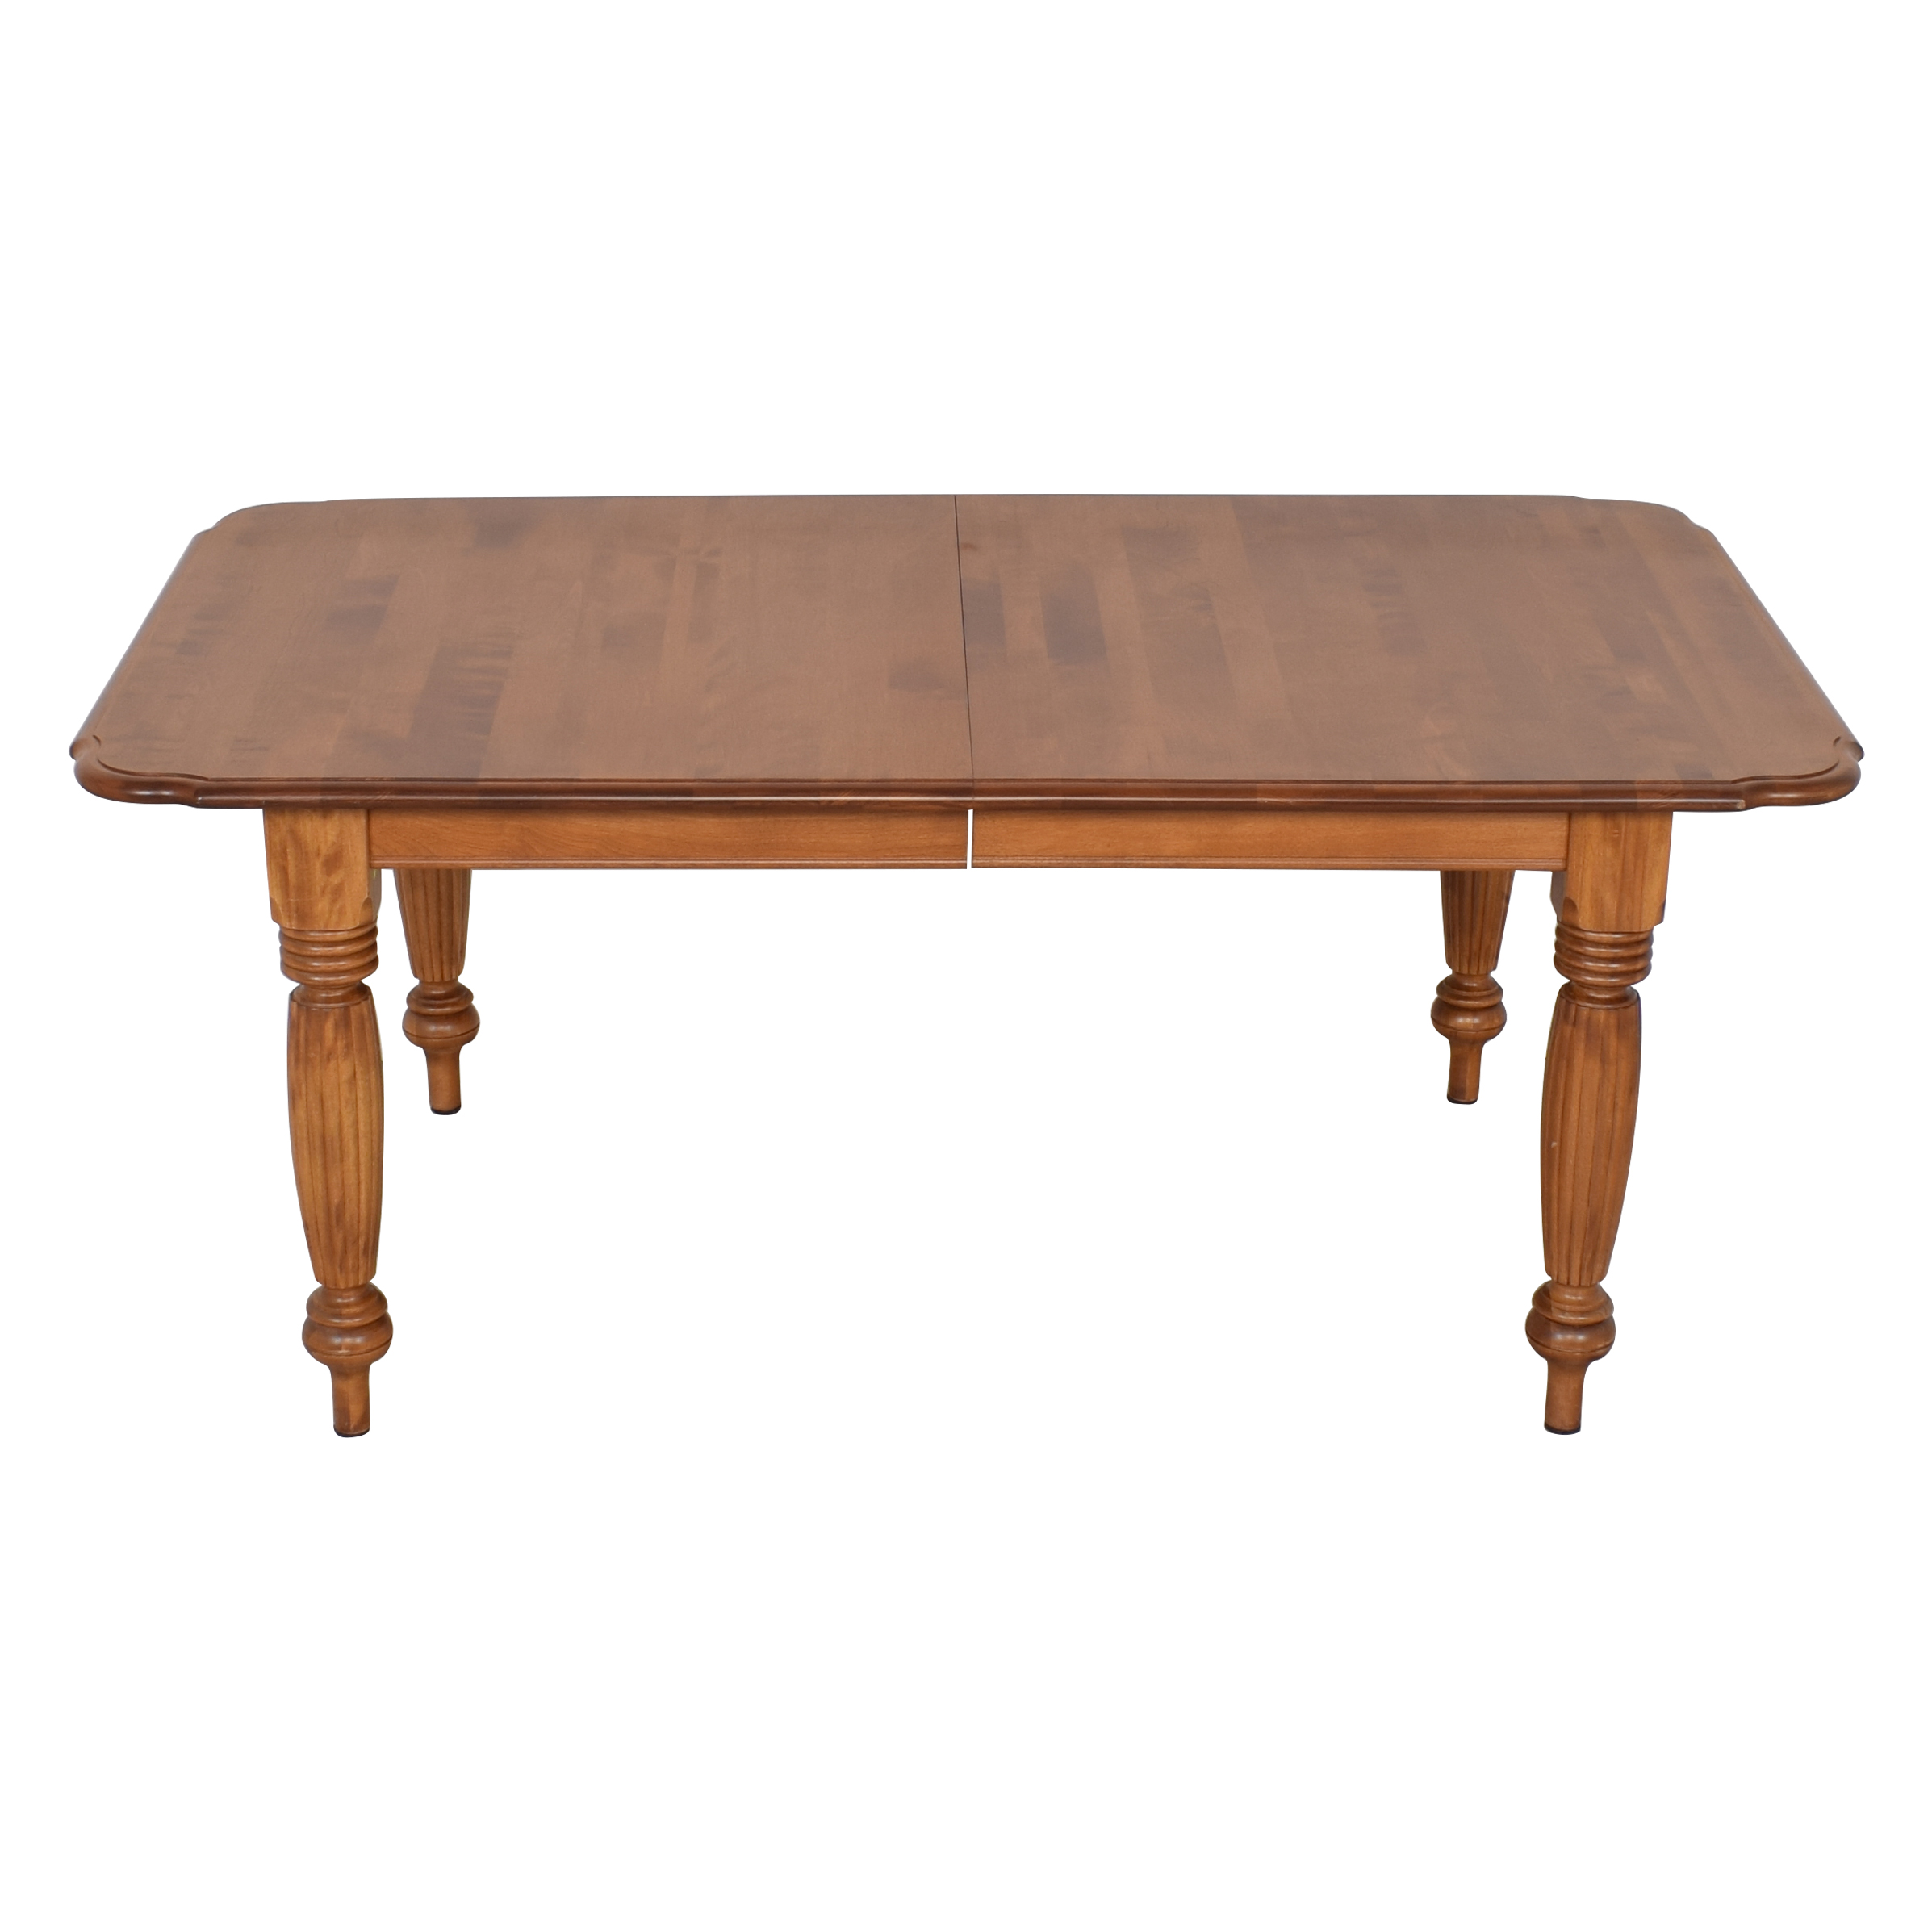 Nichols & Stone Nichols & Stone Extendable Dining Table brown